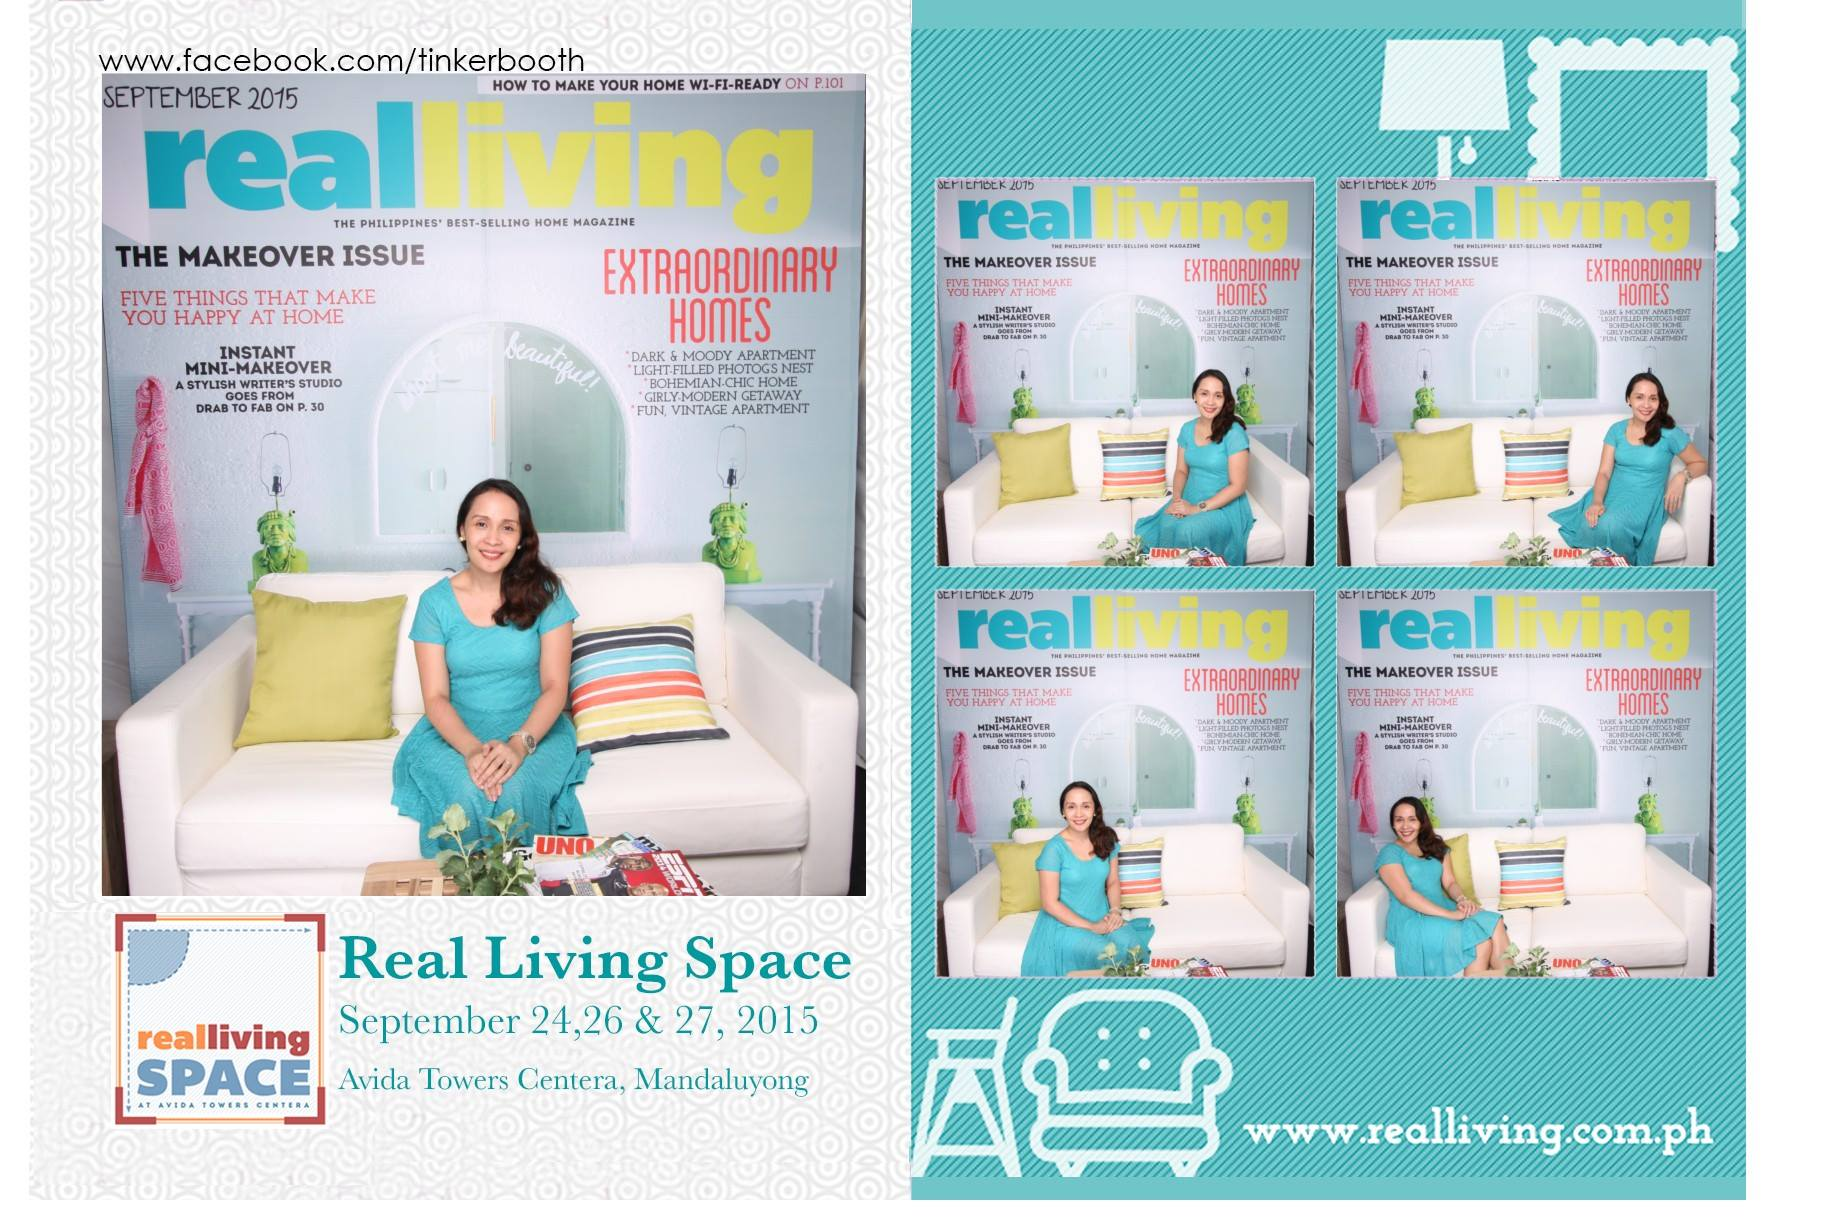 Real Living Spaces photo booth